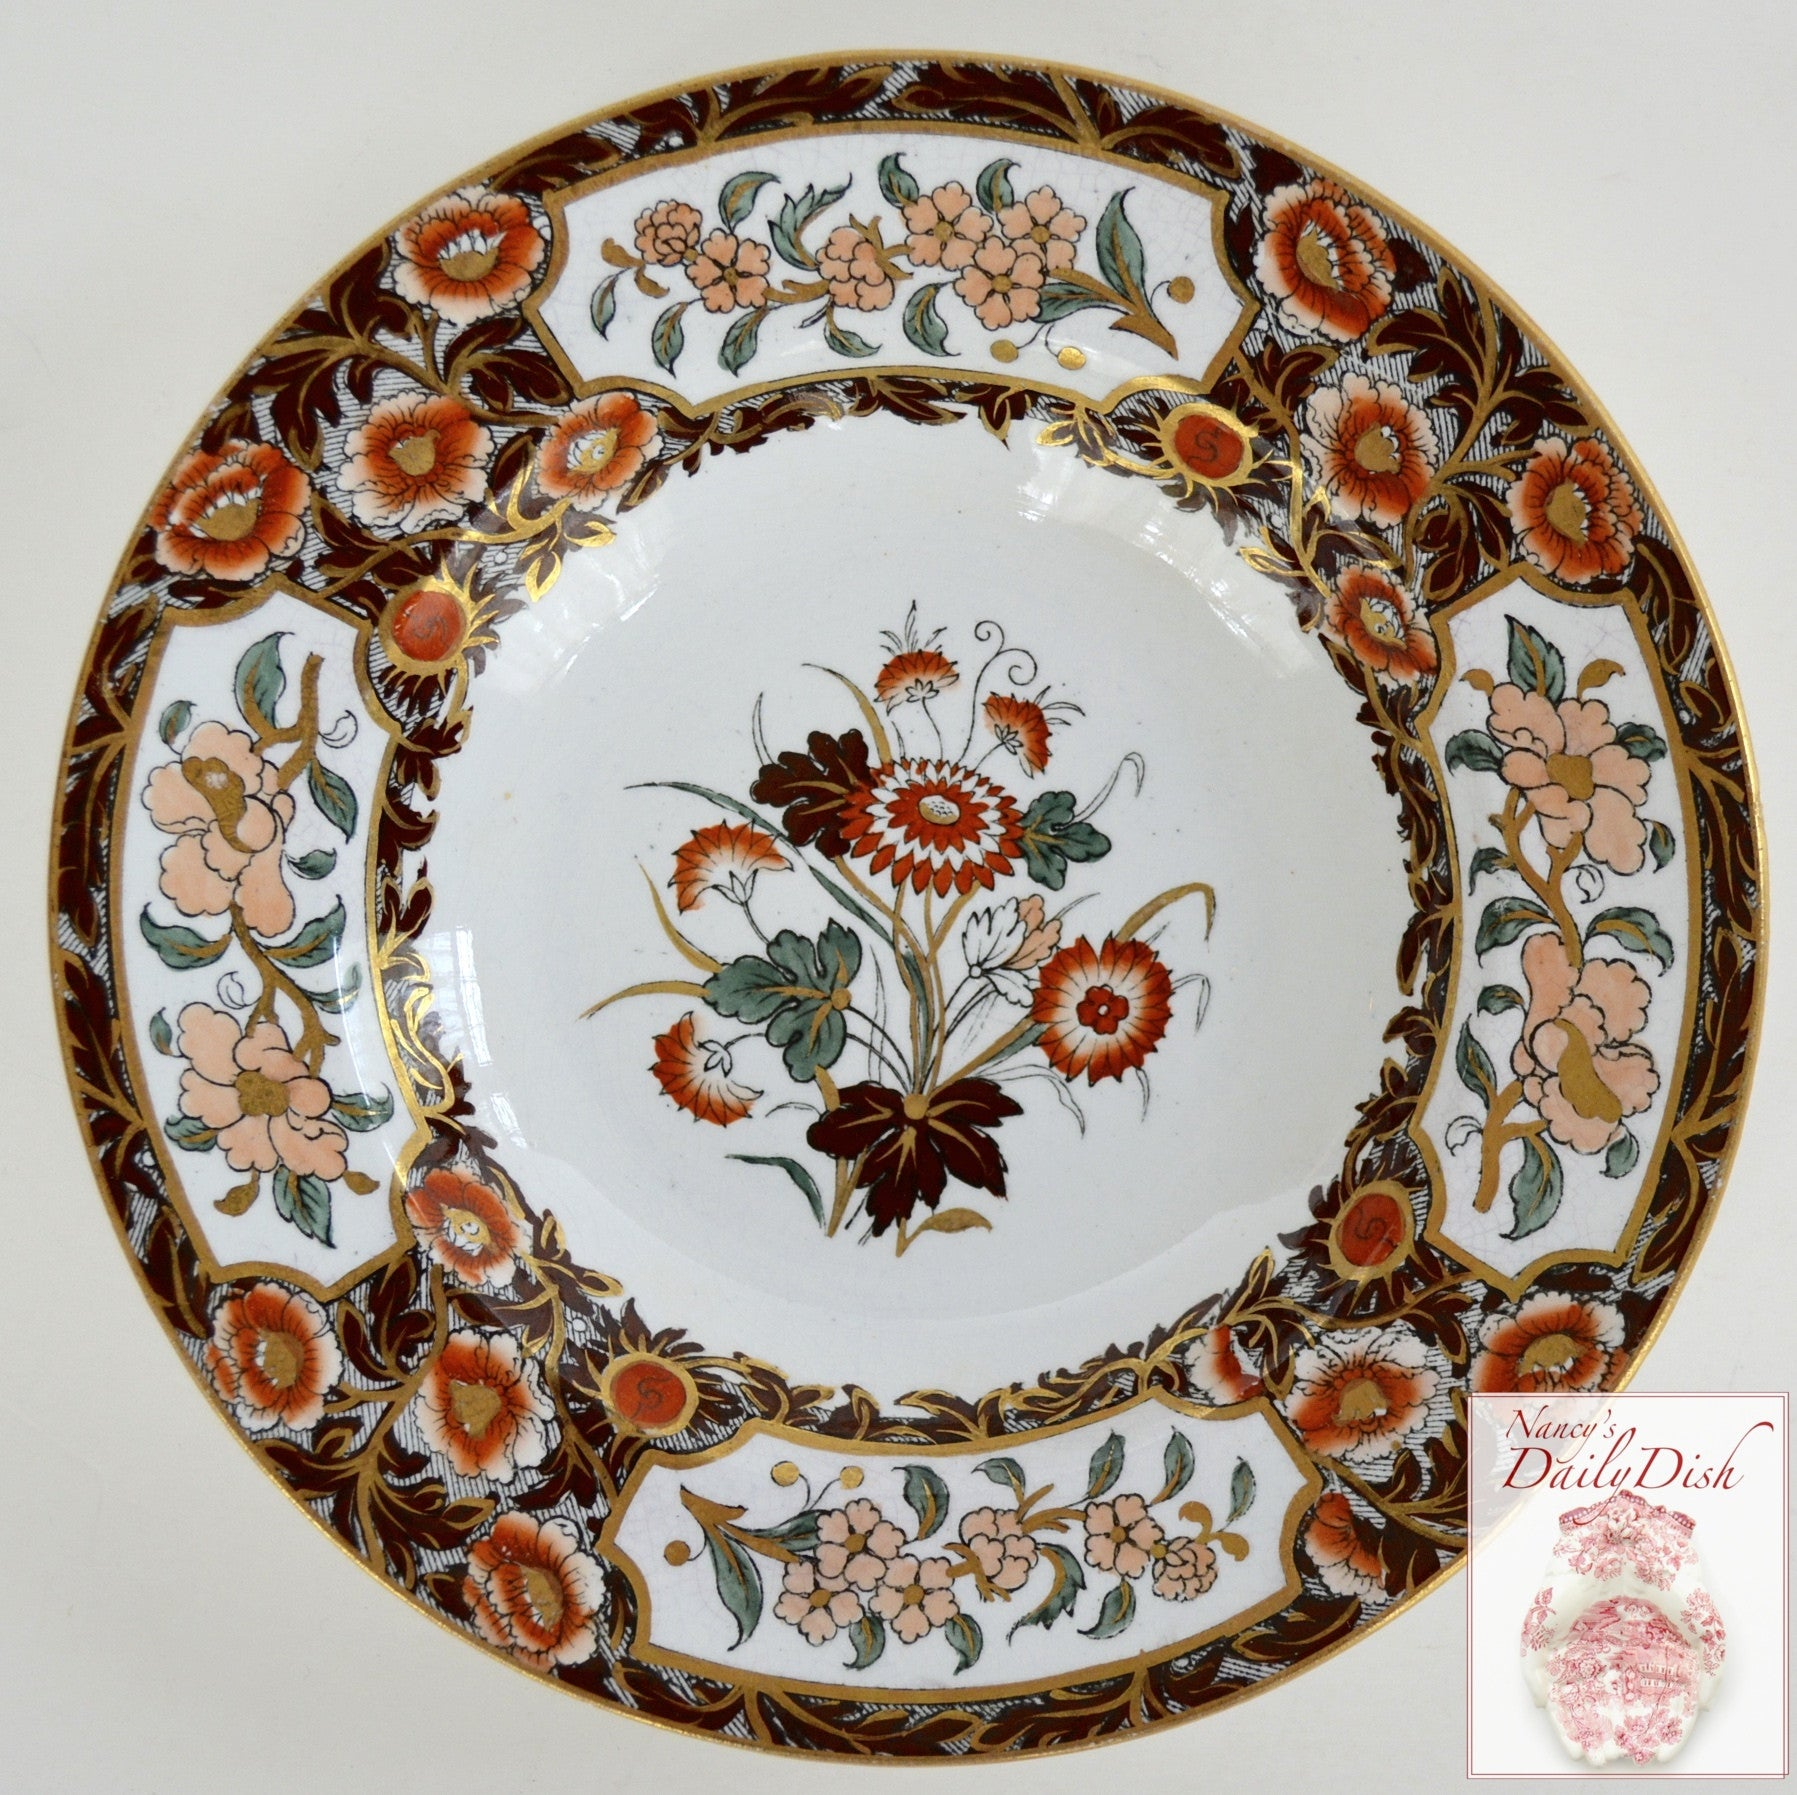 Antique Imari Floral Polychrome Clobbered Transferware Plate Flowers Hand Painted Ridgways & Antique Imari Floral Polychrome Clobbered Transferware Plate Flowers H